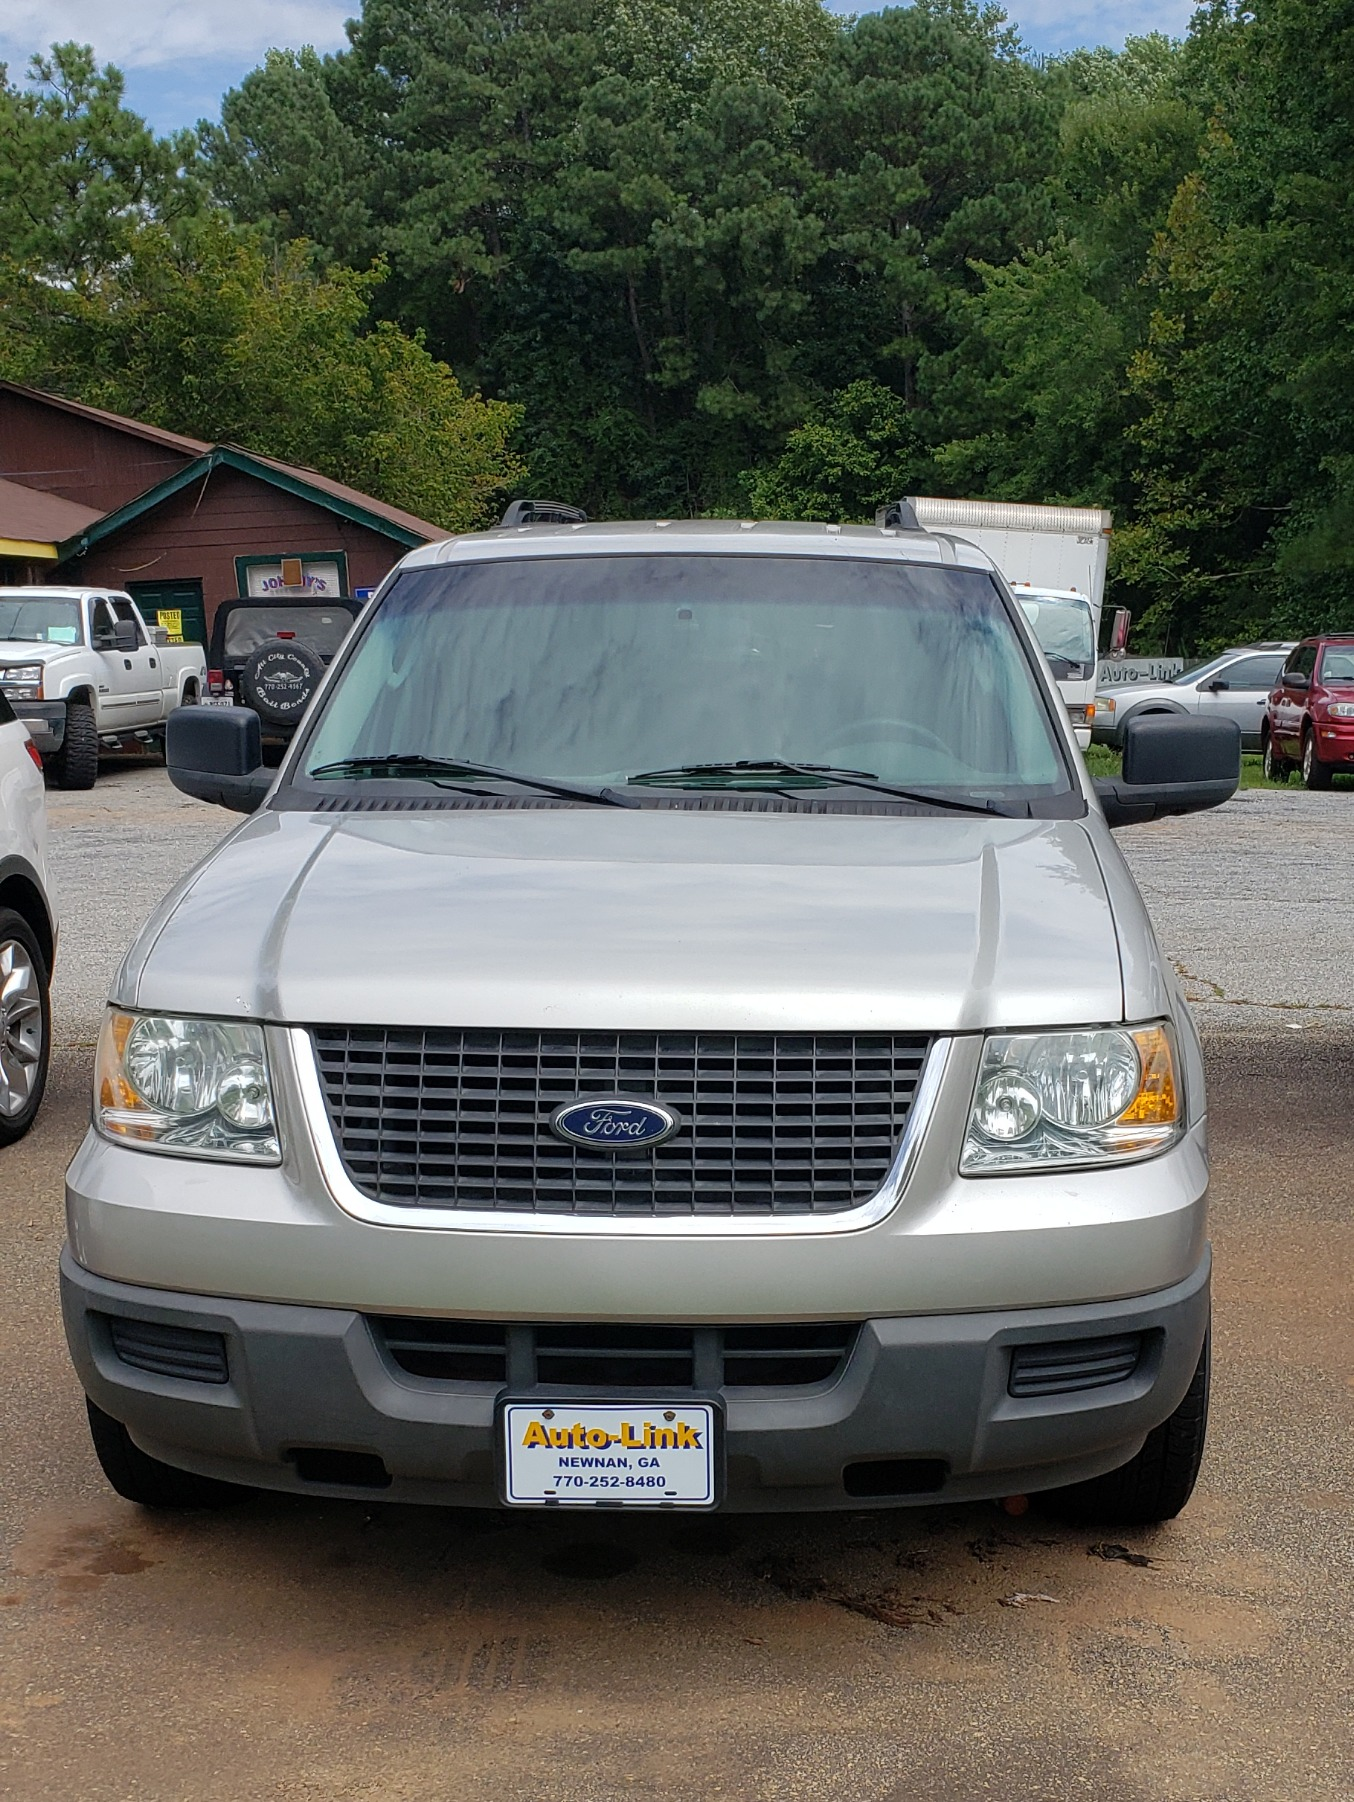 2005 Ford Expedition - One Owner!!